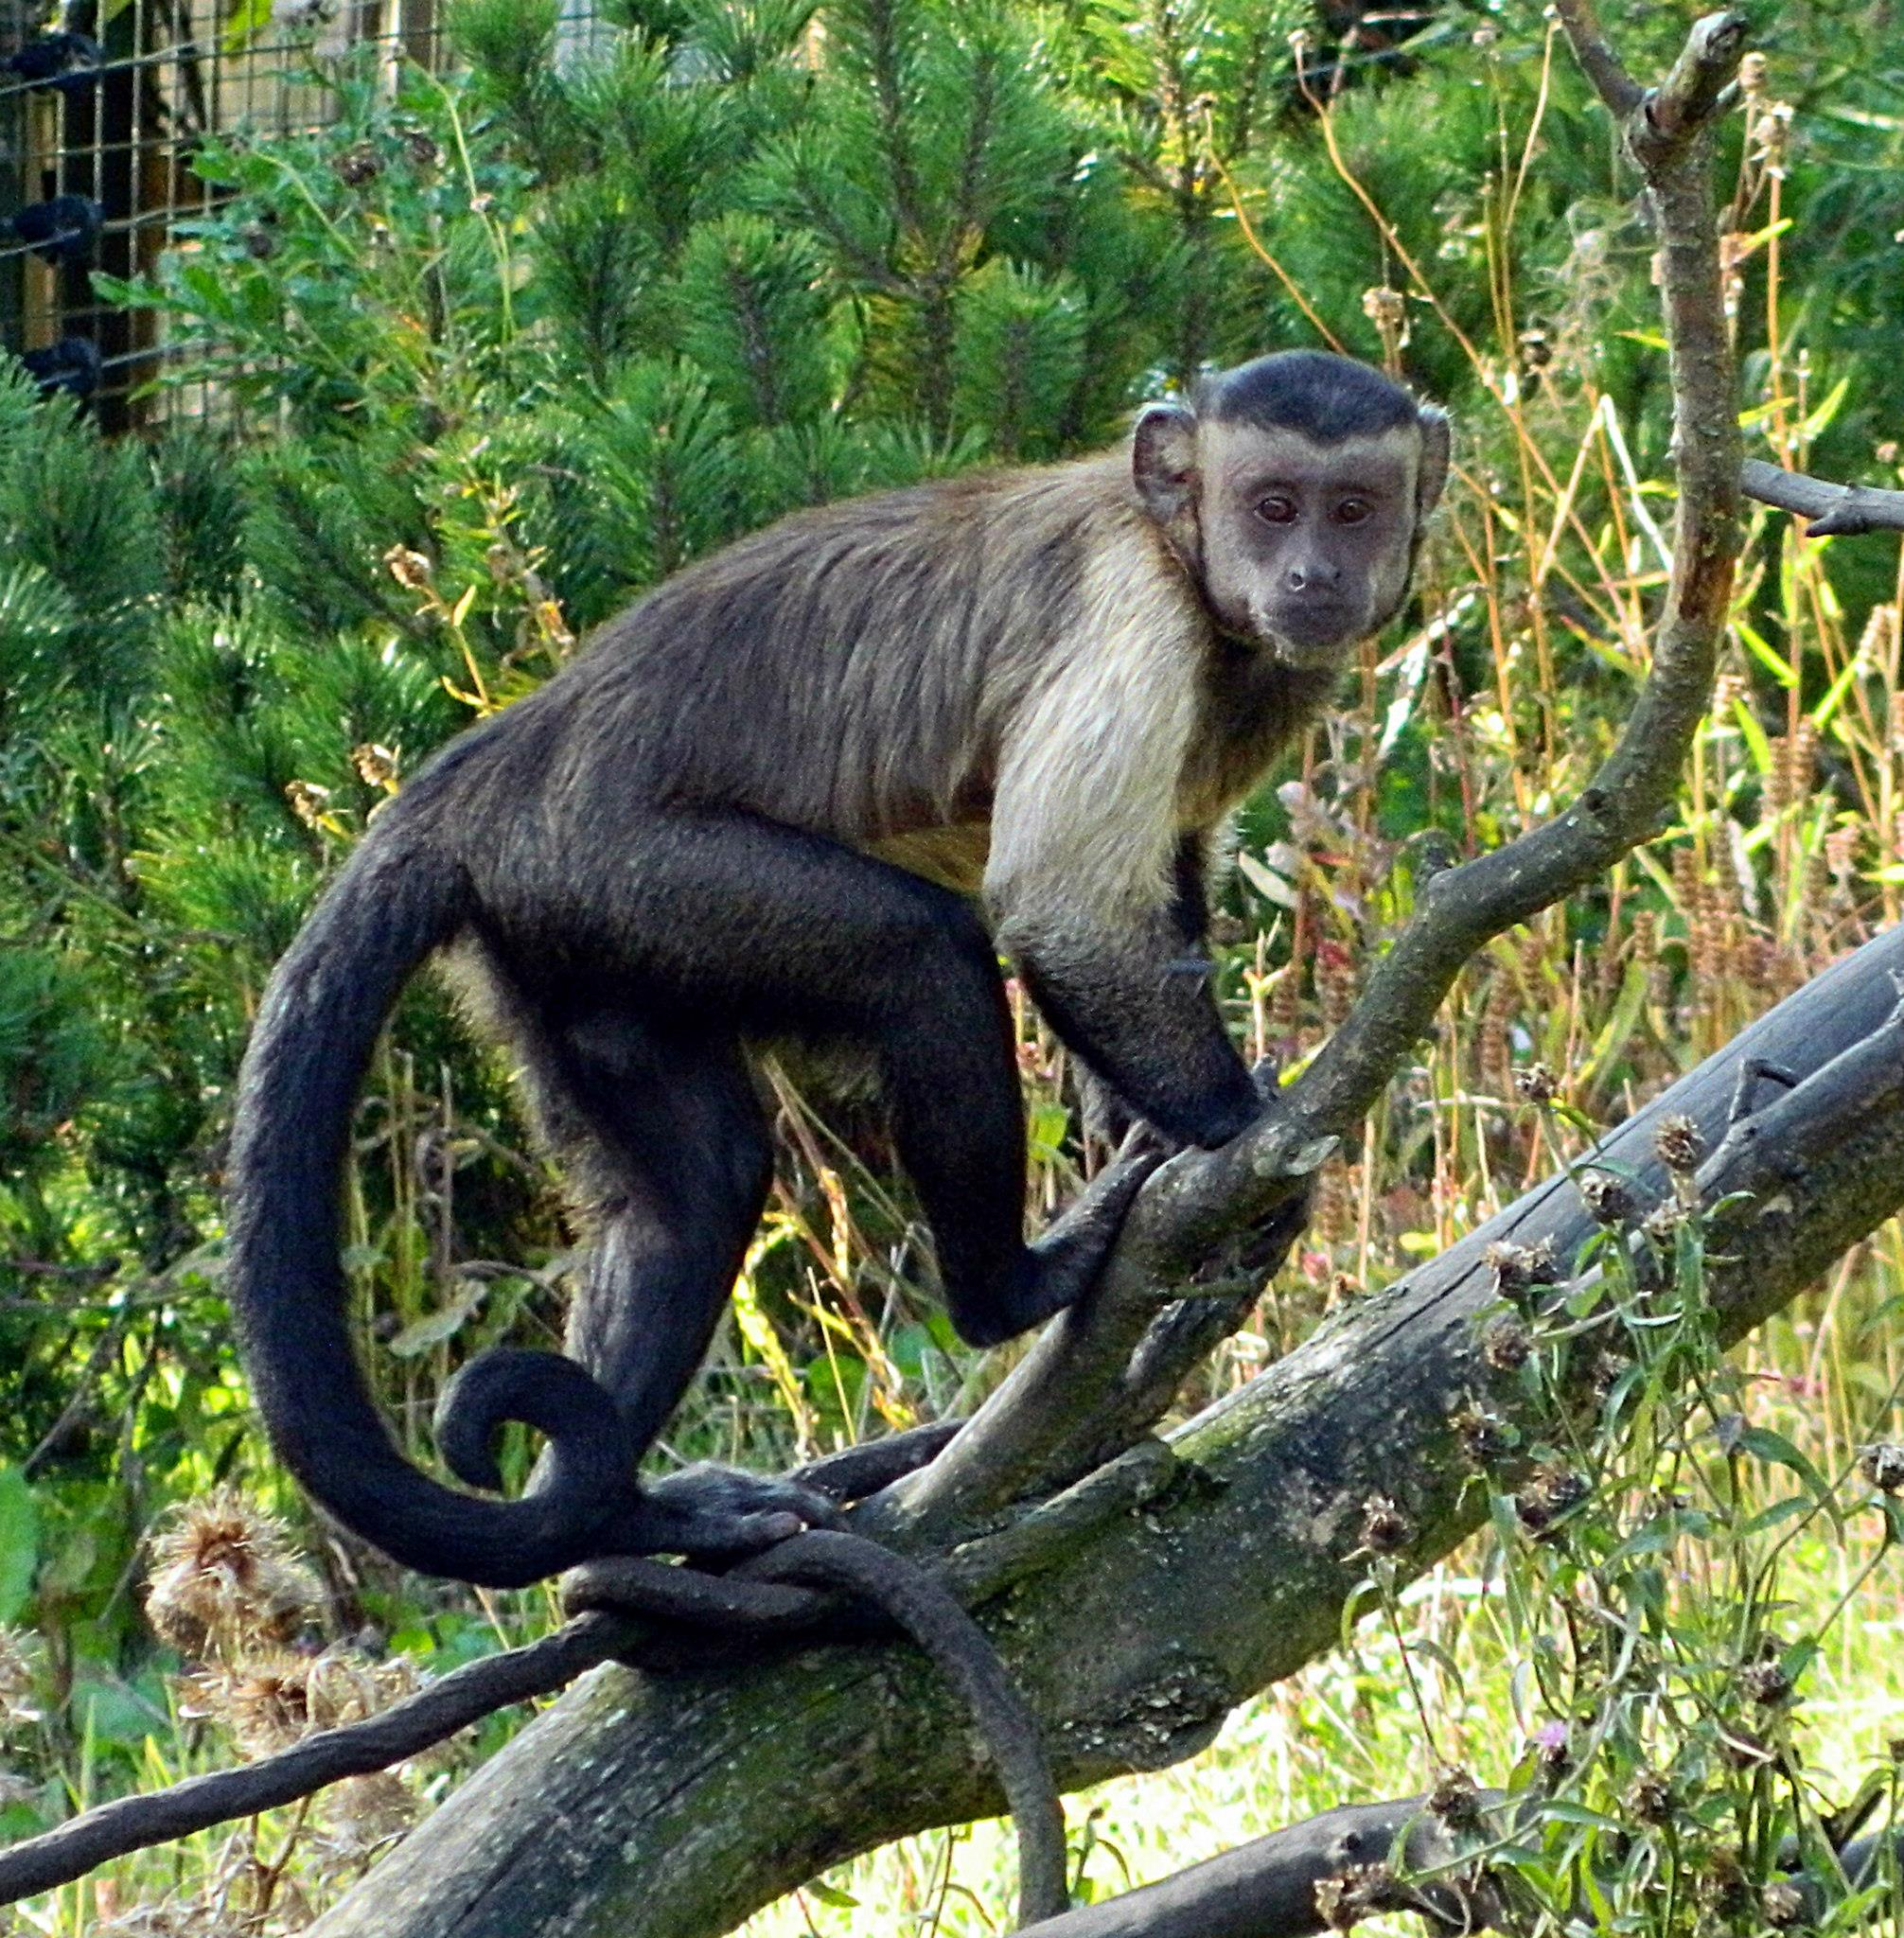 a look at the primate margarita capuchin monkeys sapajus apella margaritae Need writing haplorhine primates essay use our essay writing services or get access to database of 58 free essays samples about haplorhine primates signup now and.